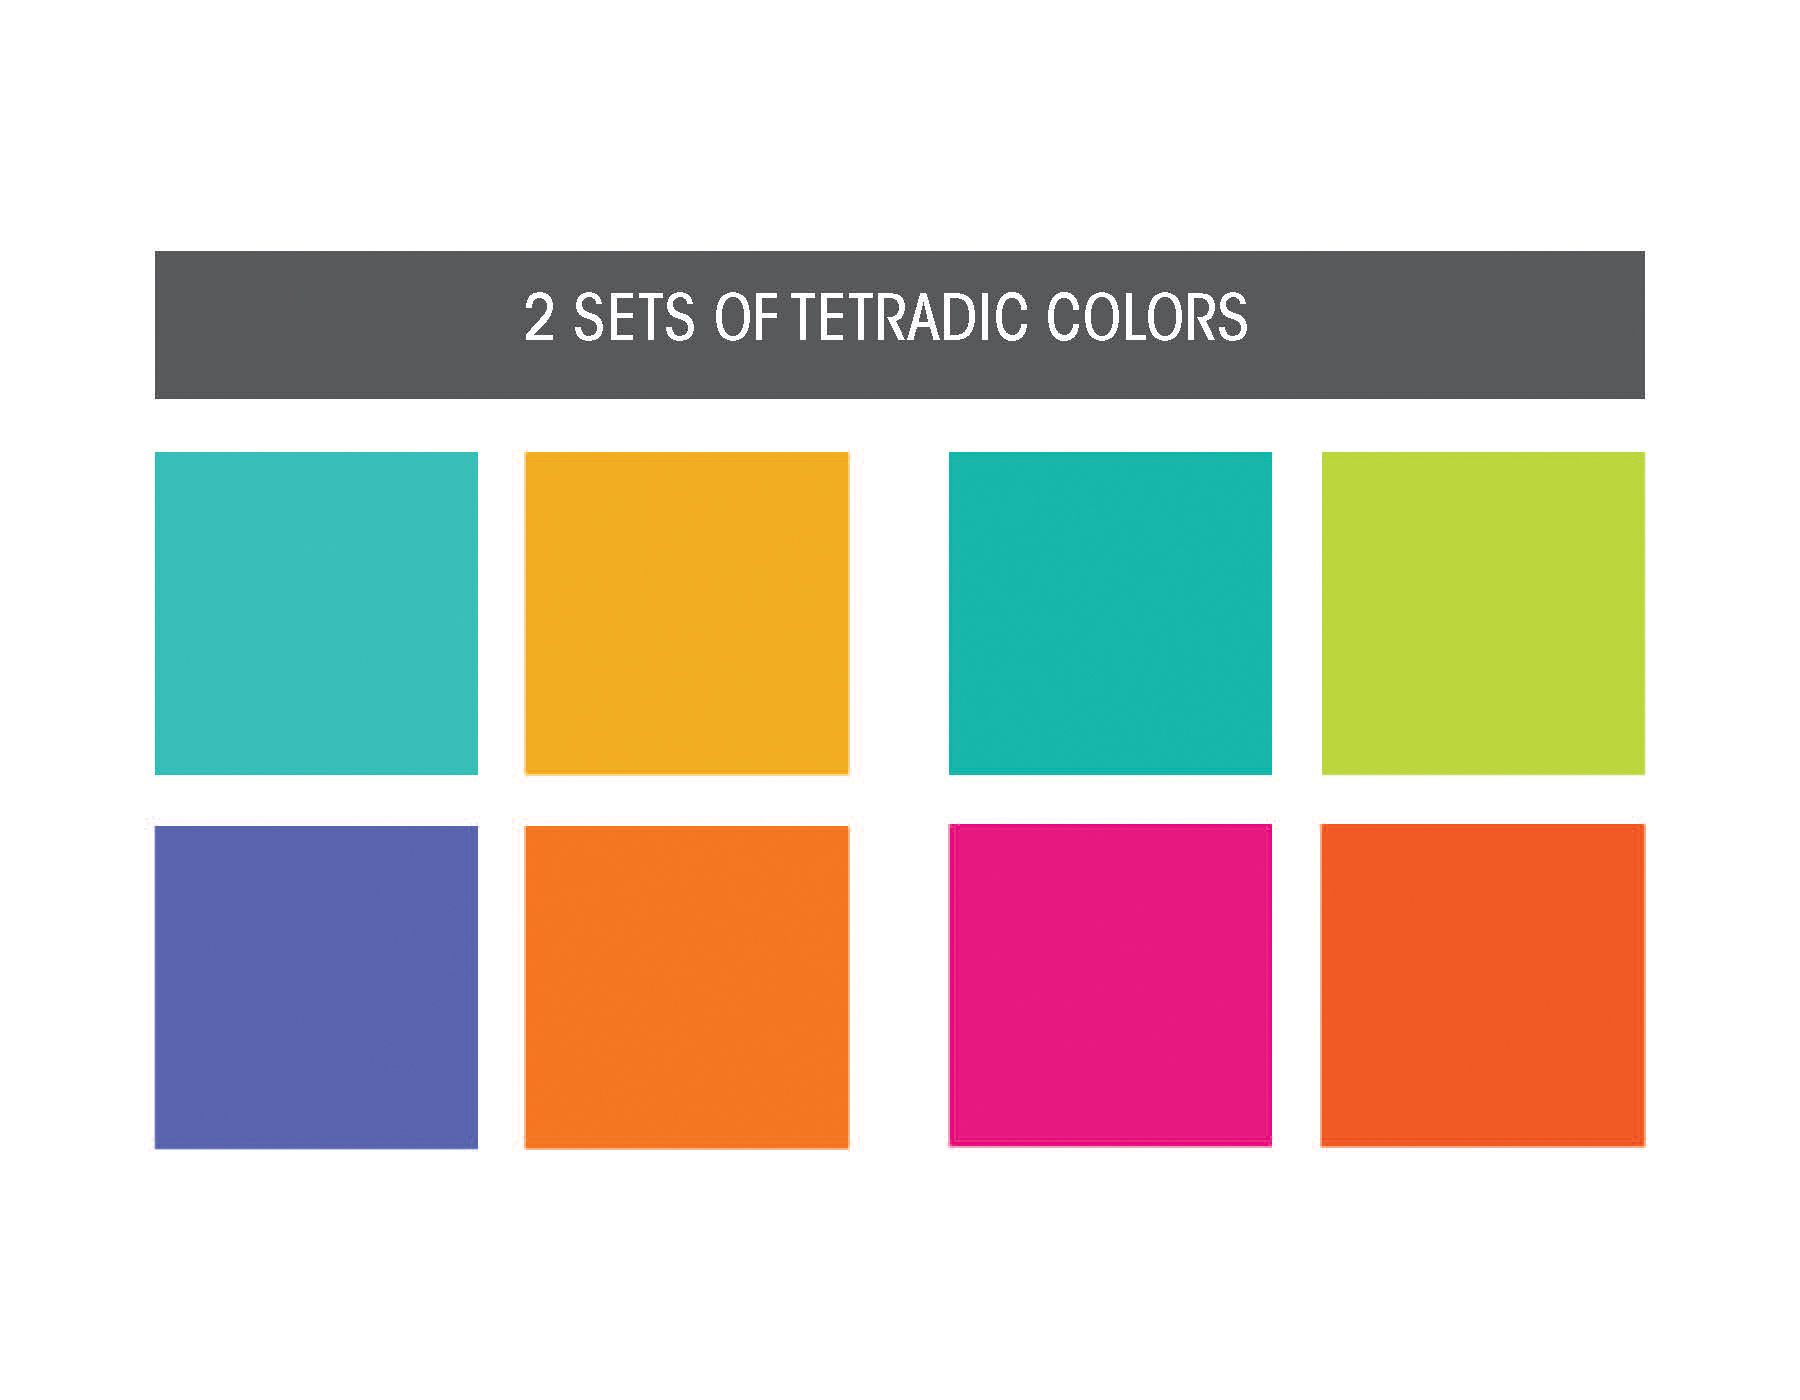 Tetradic Colors Combinations Of 4 That Form A Rectangle Or Square Across From Each